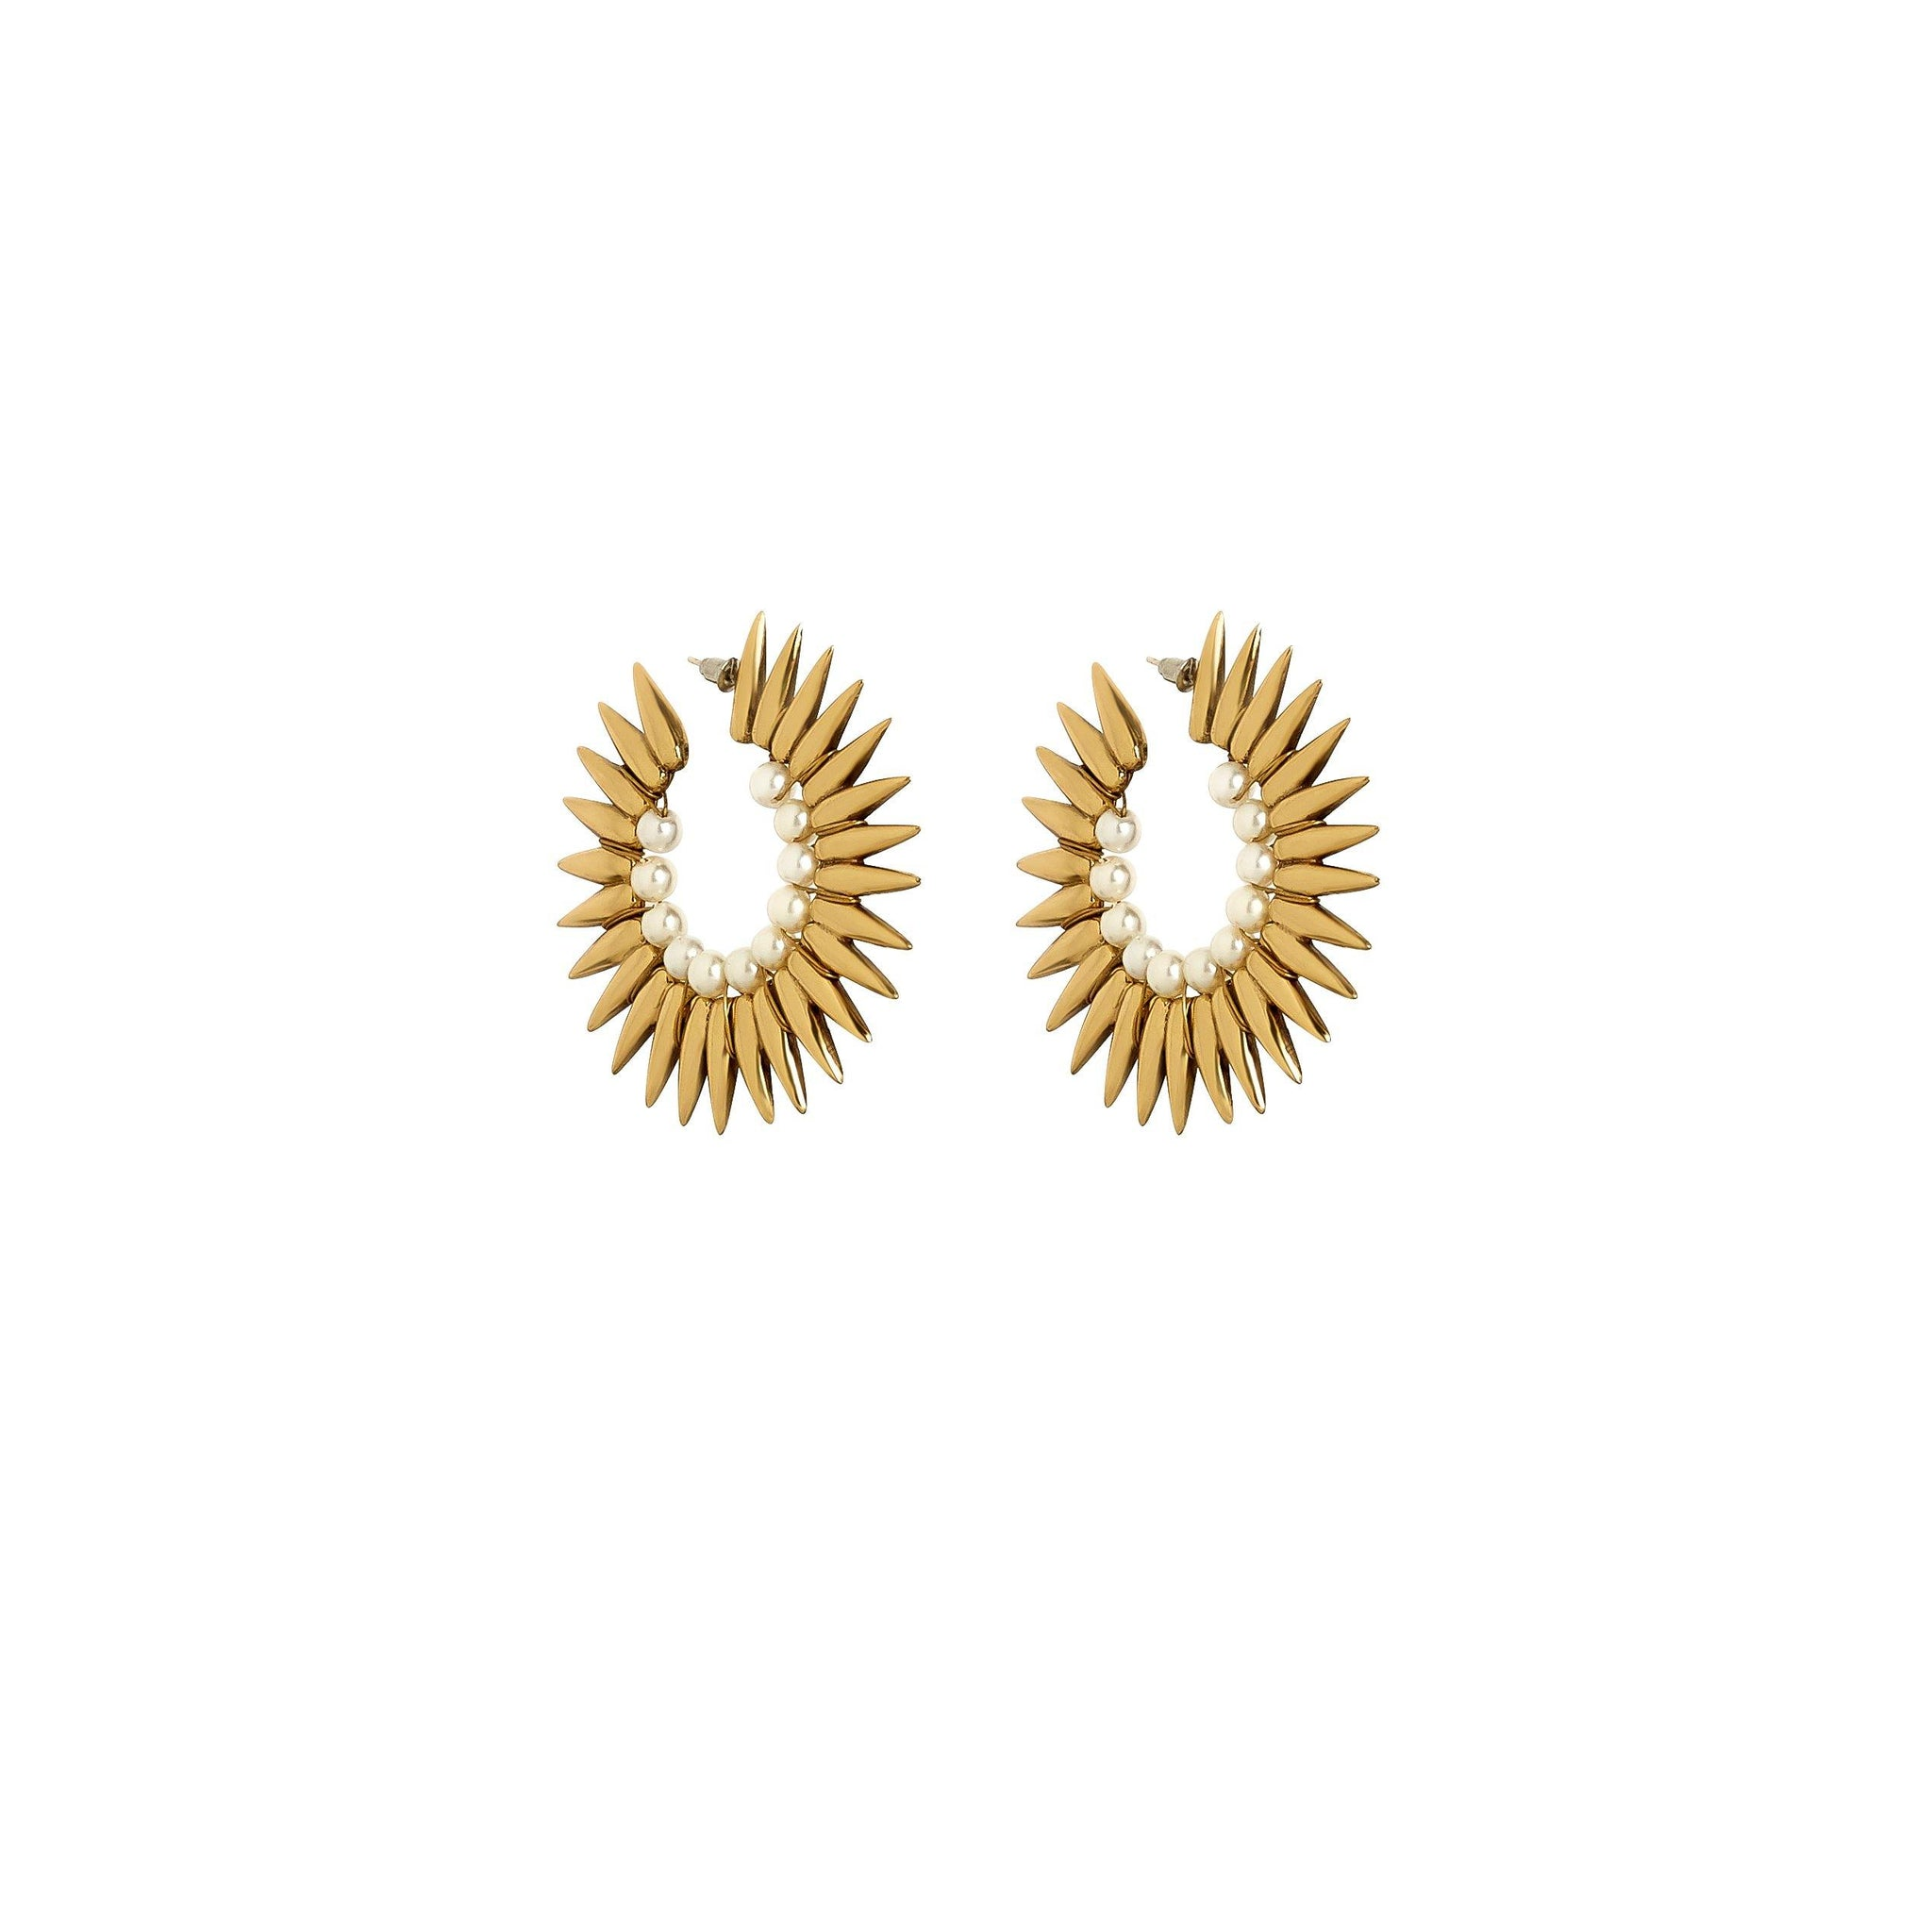 Perla Earrings - Kasha Bali